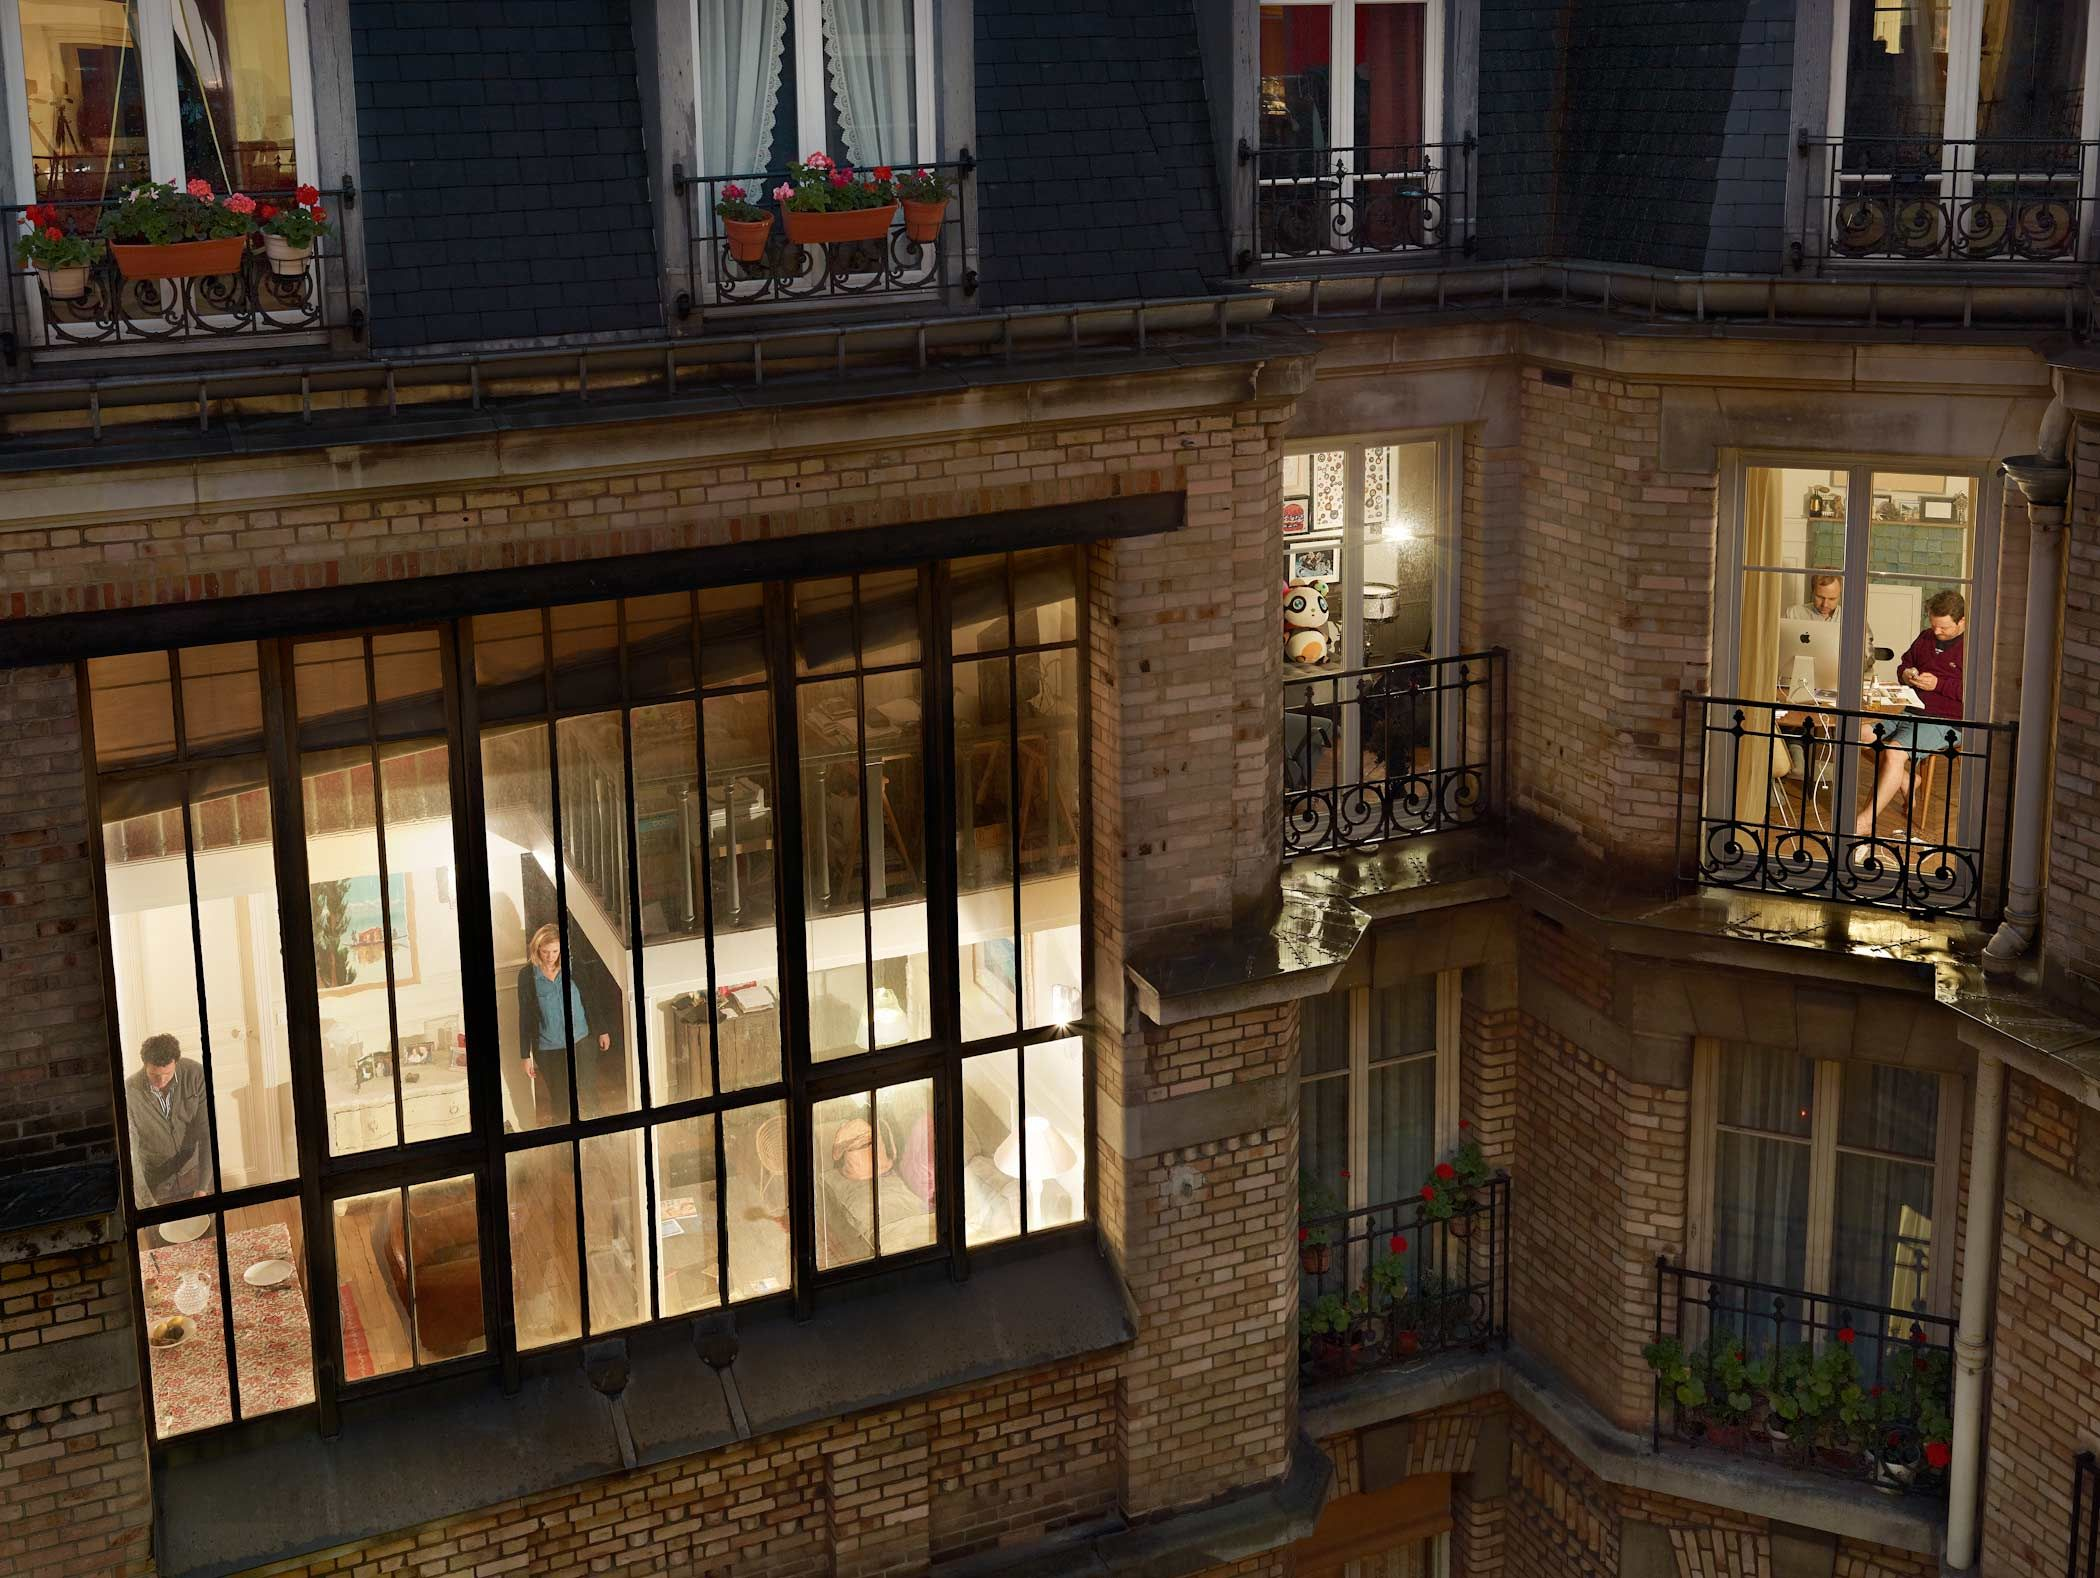 exclusive first look gail halaban 39 s paris views the cut ForVoisine Fenetre